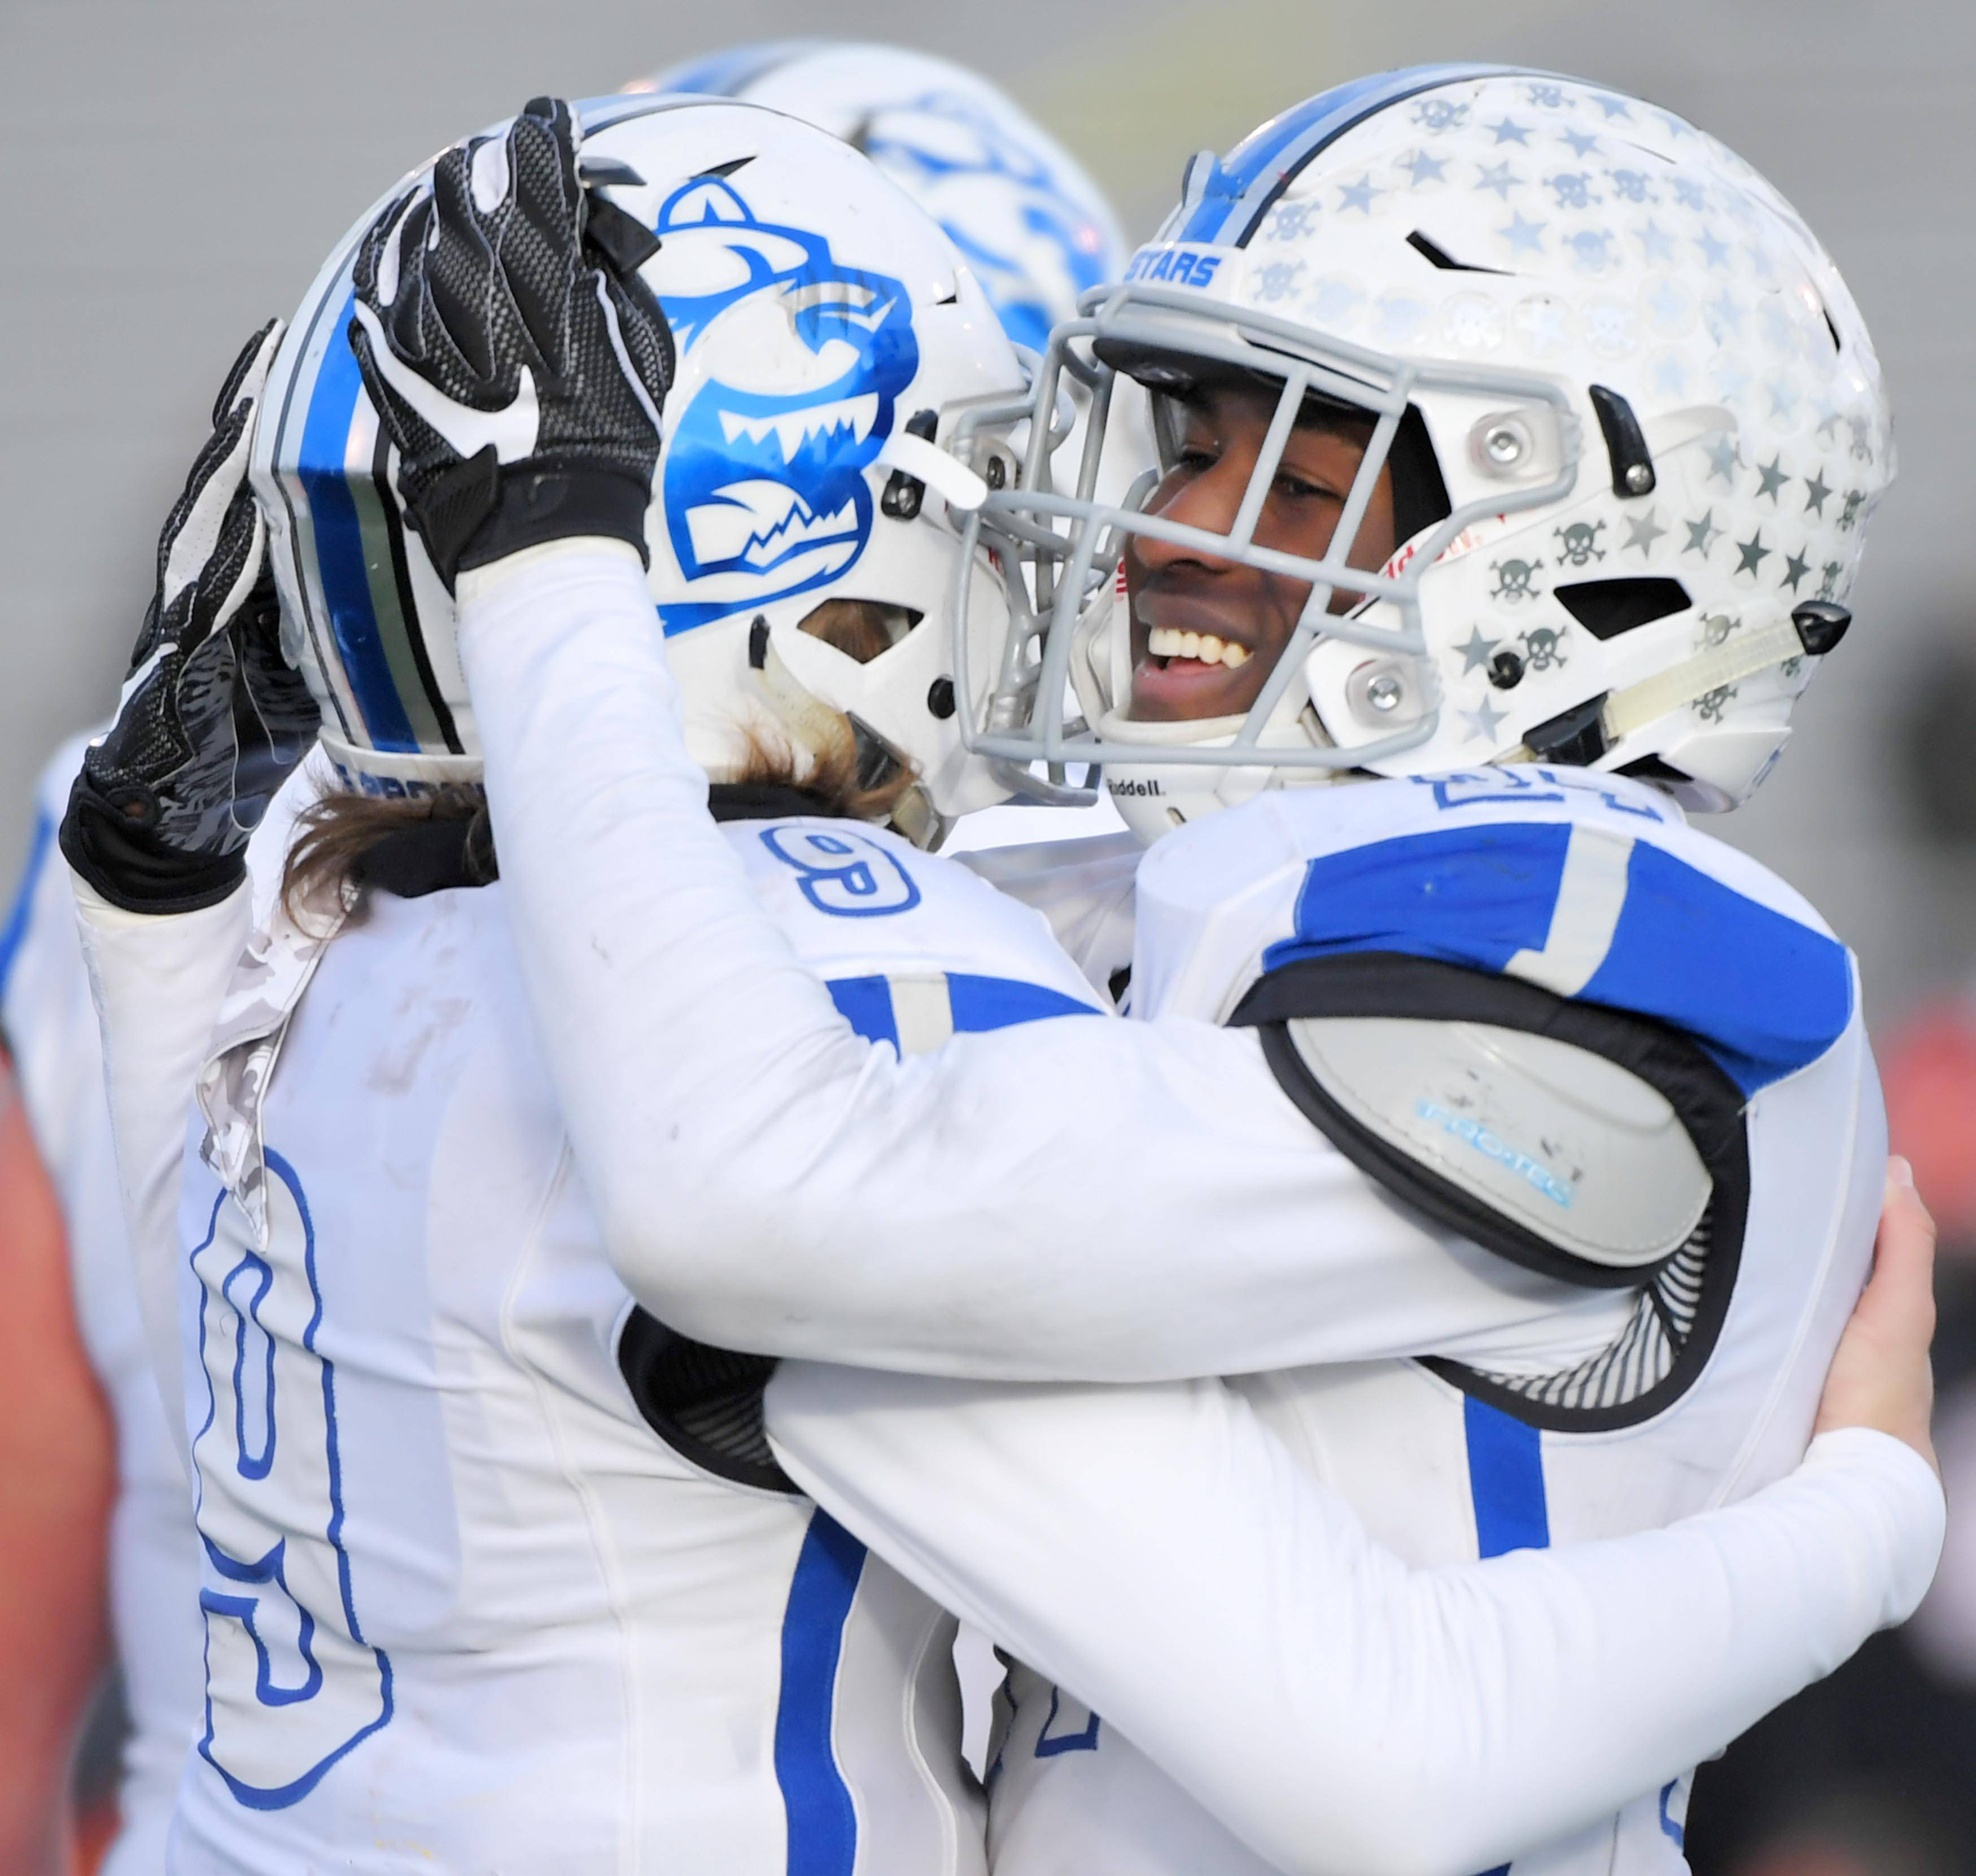 St. Charles North's Tyler Nubin hugs quarterback Peyton Brown after the North Stars win against Wheaton Warrenville South Saturday in a quarterfinal playoff football game in Wheaton.